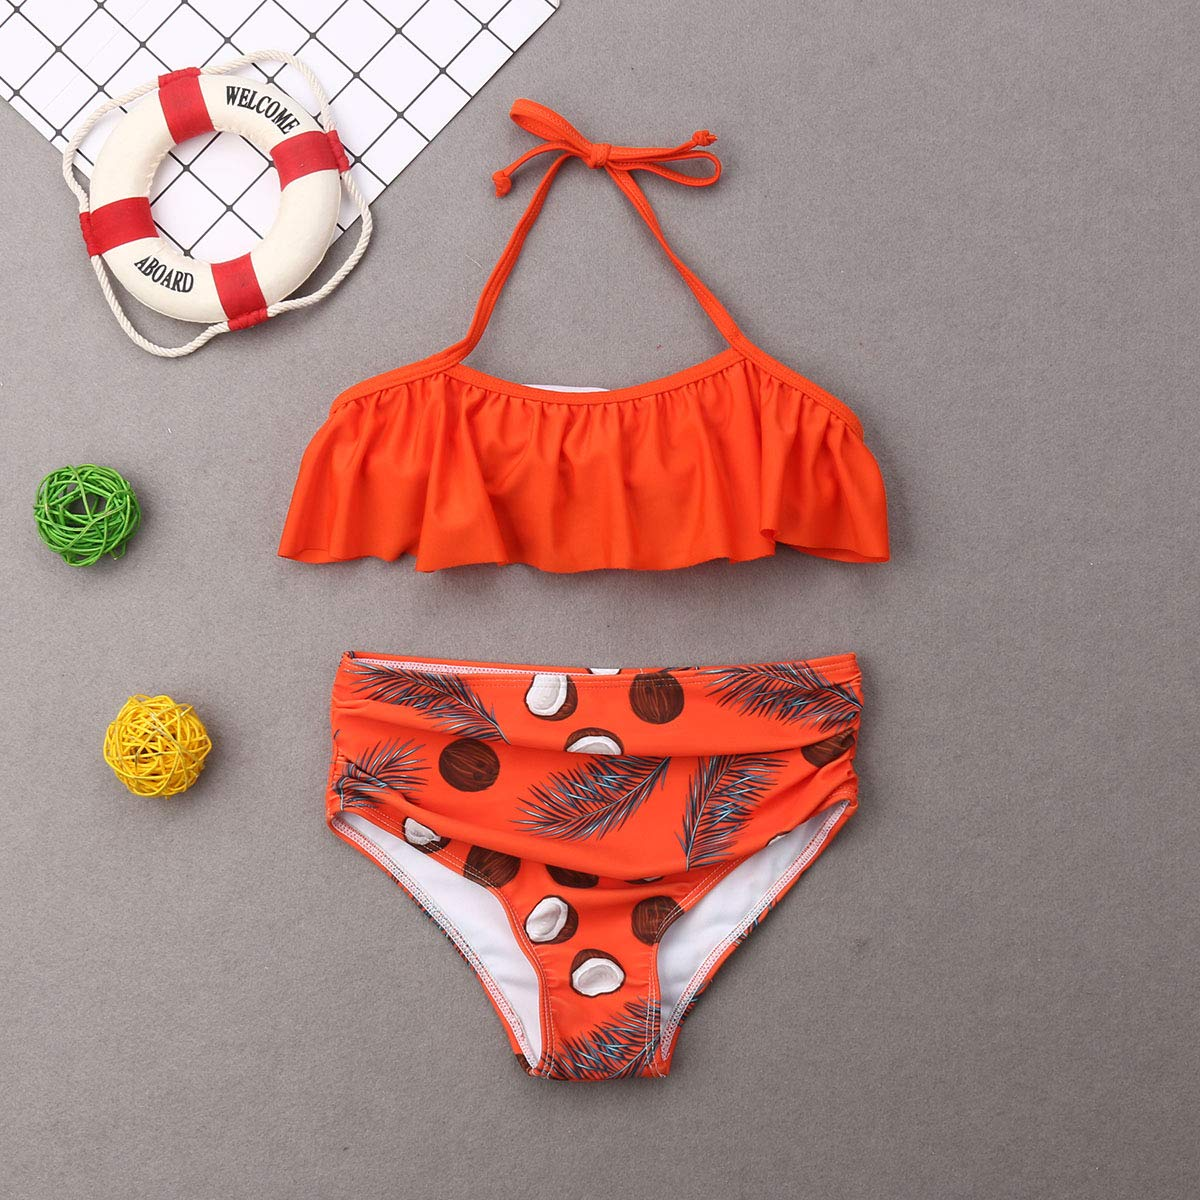 ICOOLTECH Mommy and Me Two Piece Bikini Set Father and Son Swim Trunks